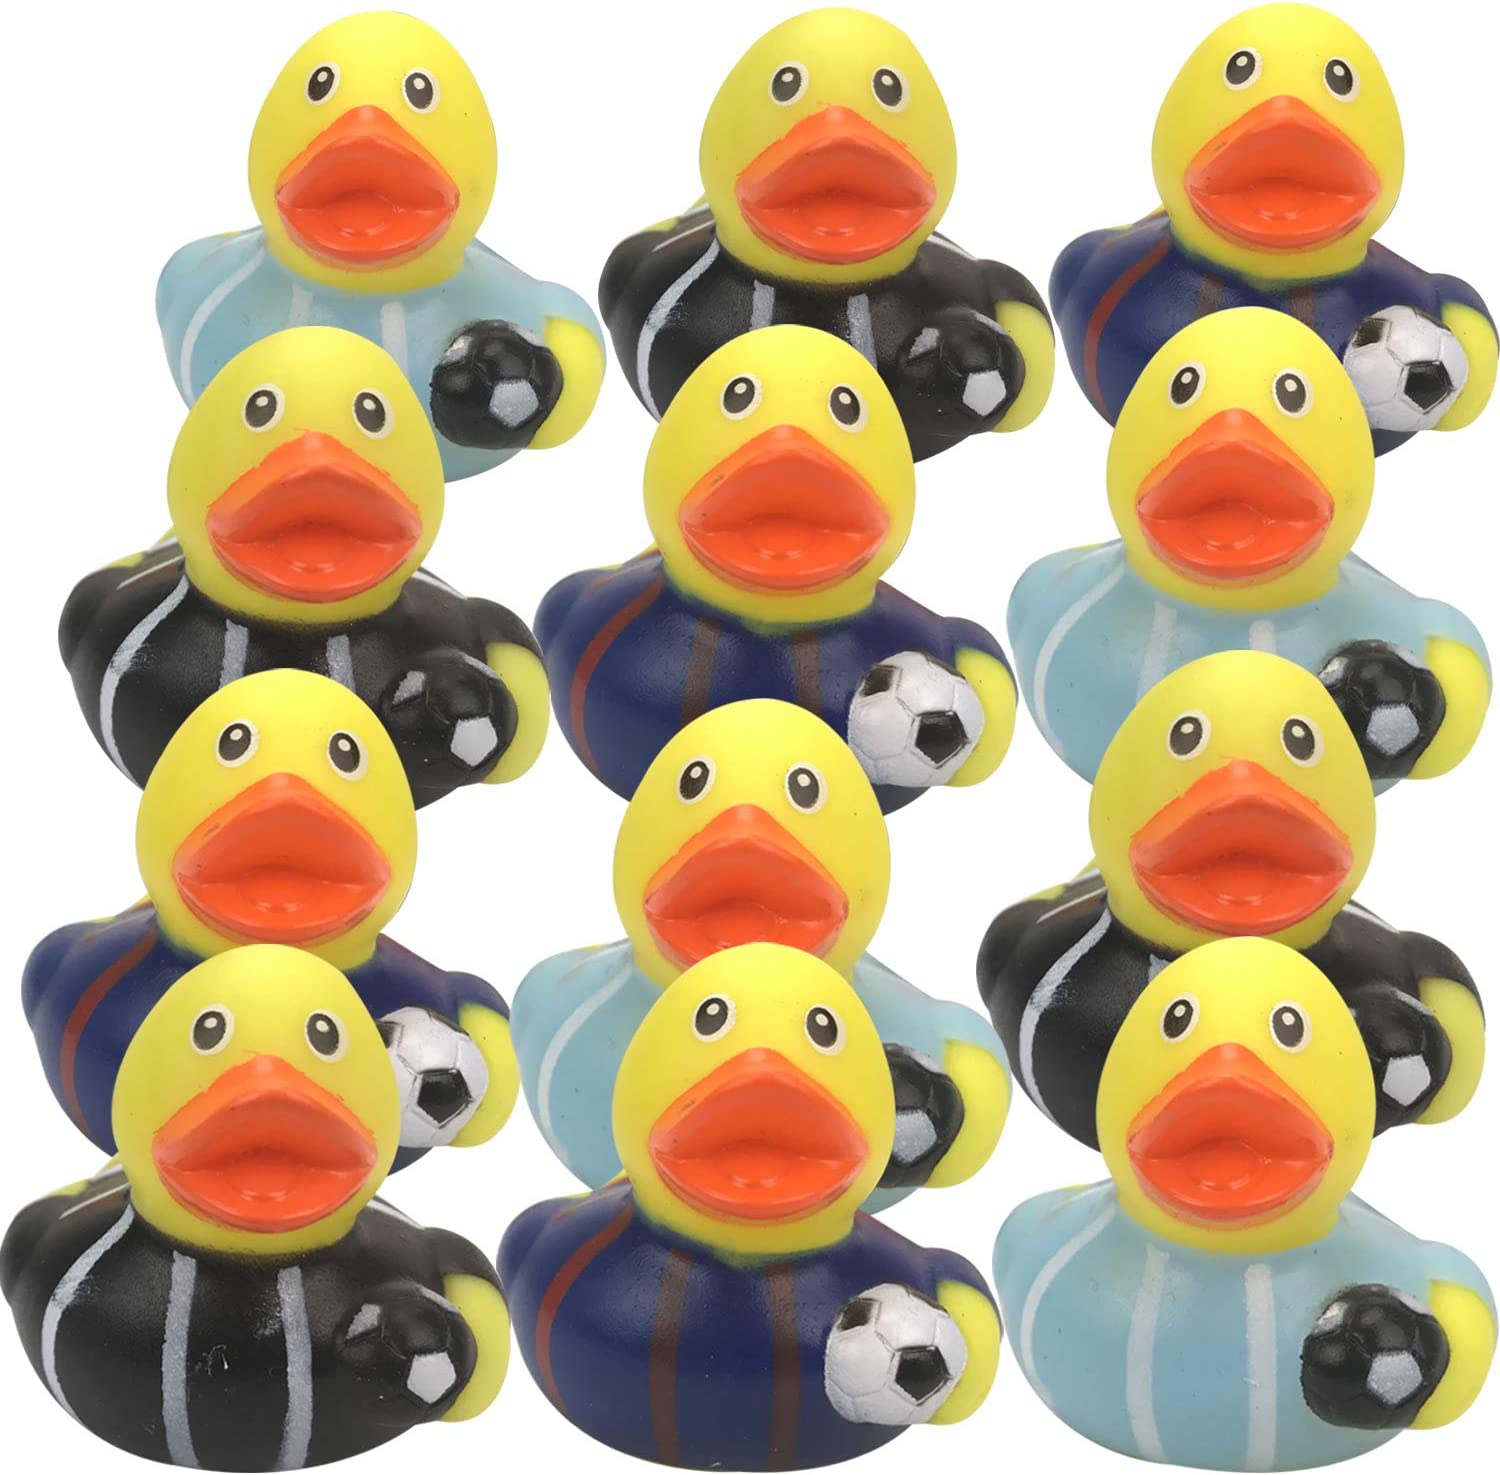 Birthday Livativ 2 Inch Alphabet Rubber Duckies Baby Shower Learn Your Alphabet Toys for Bath Mini Bath Time Toys for Infants and Toddlers from Playko Tiny Rubber Ducks for Kids Pack of 26